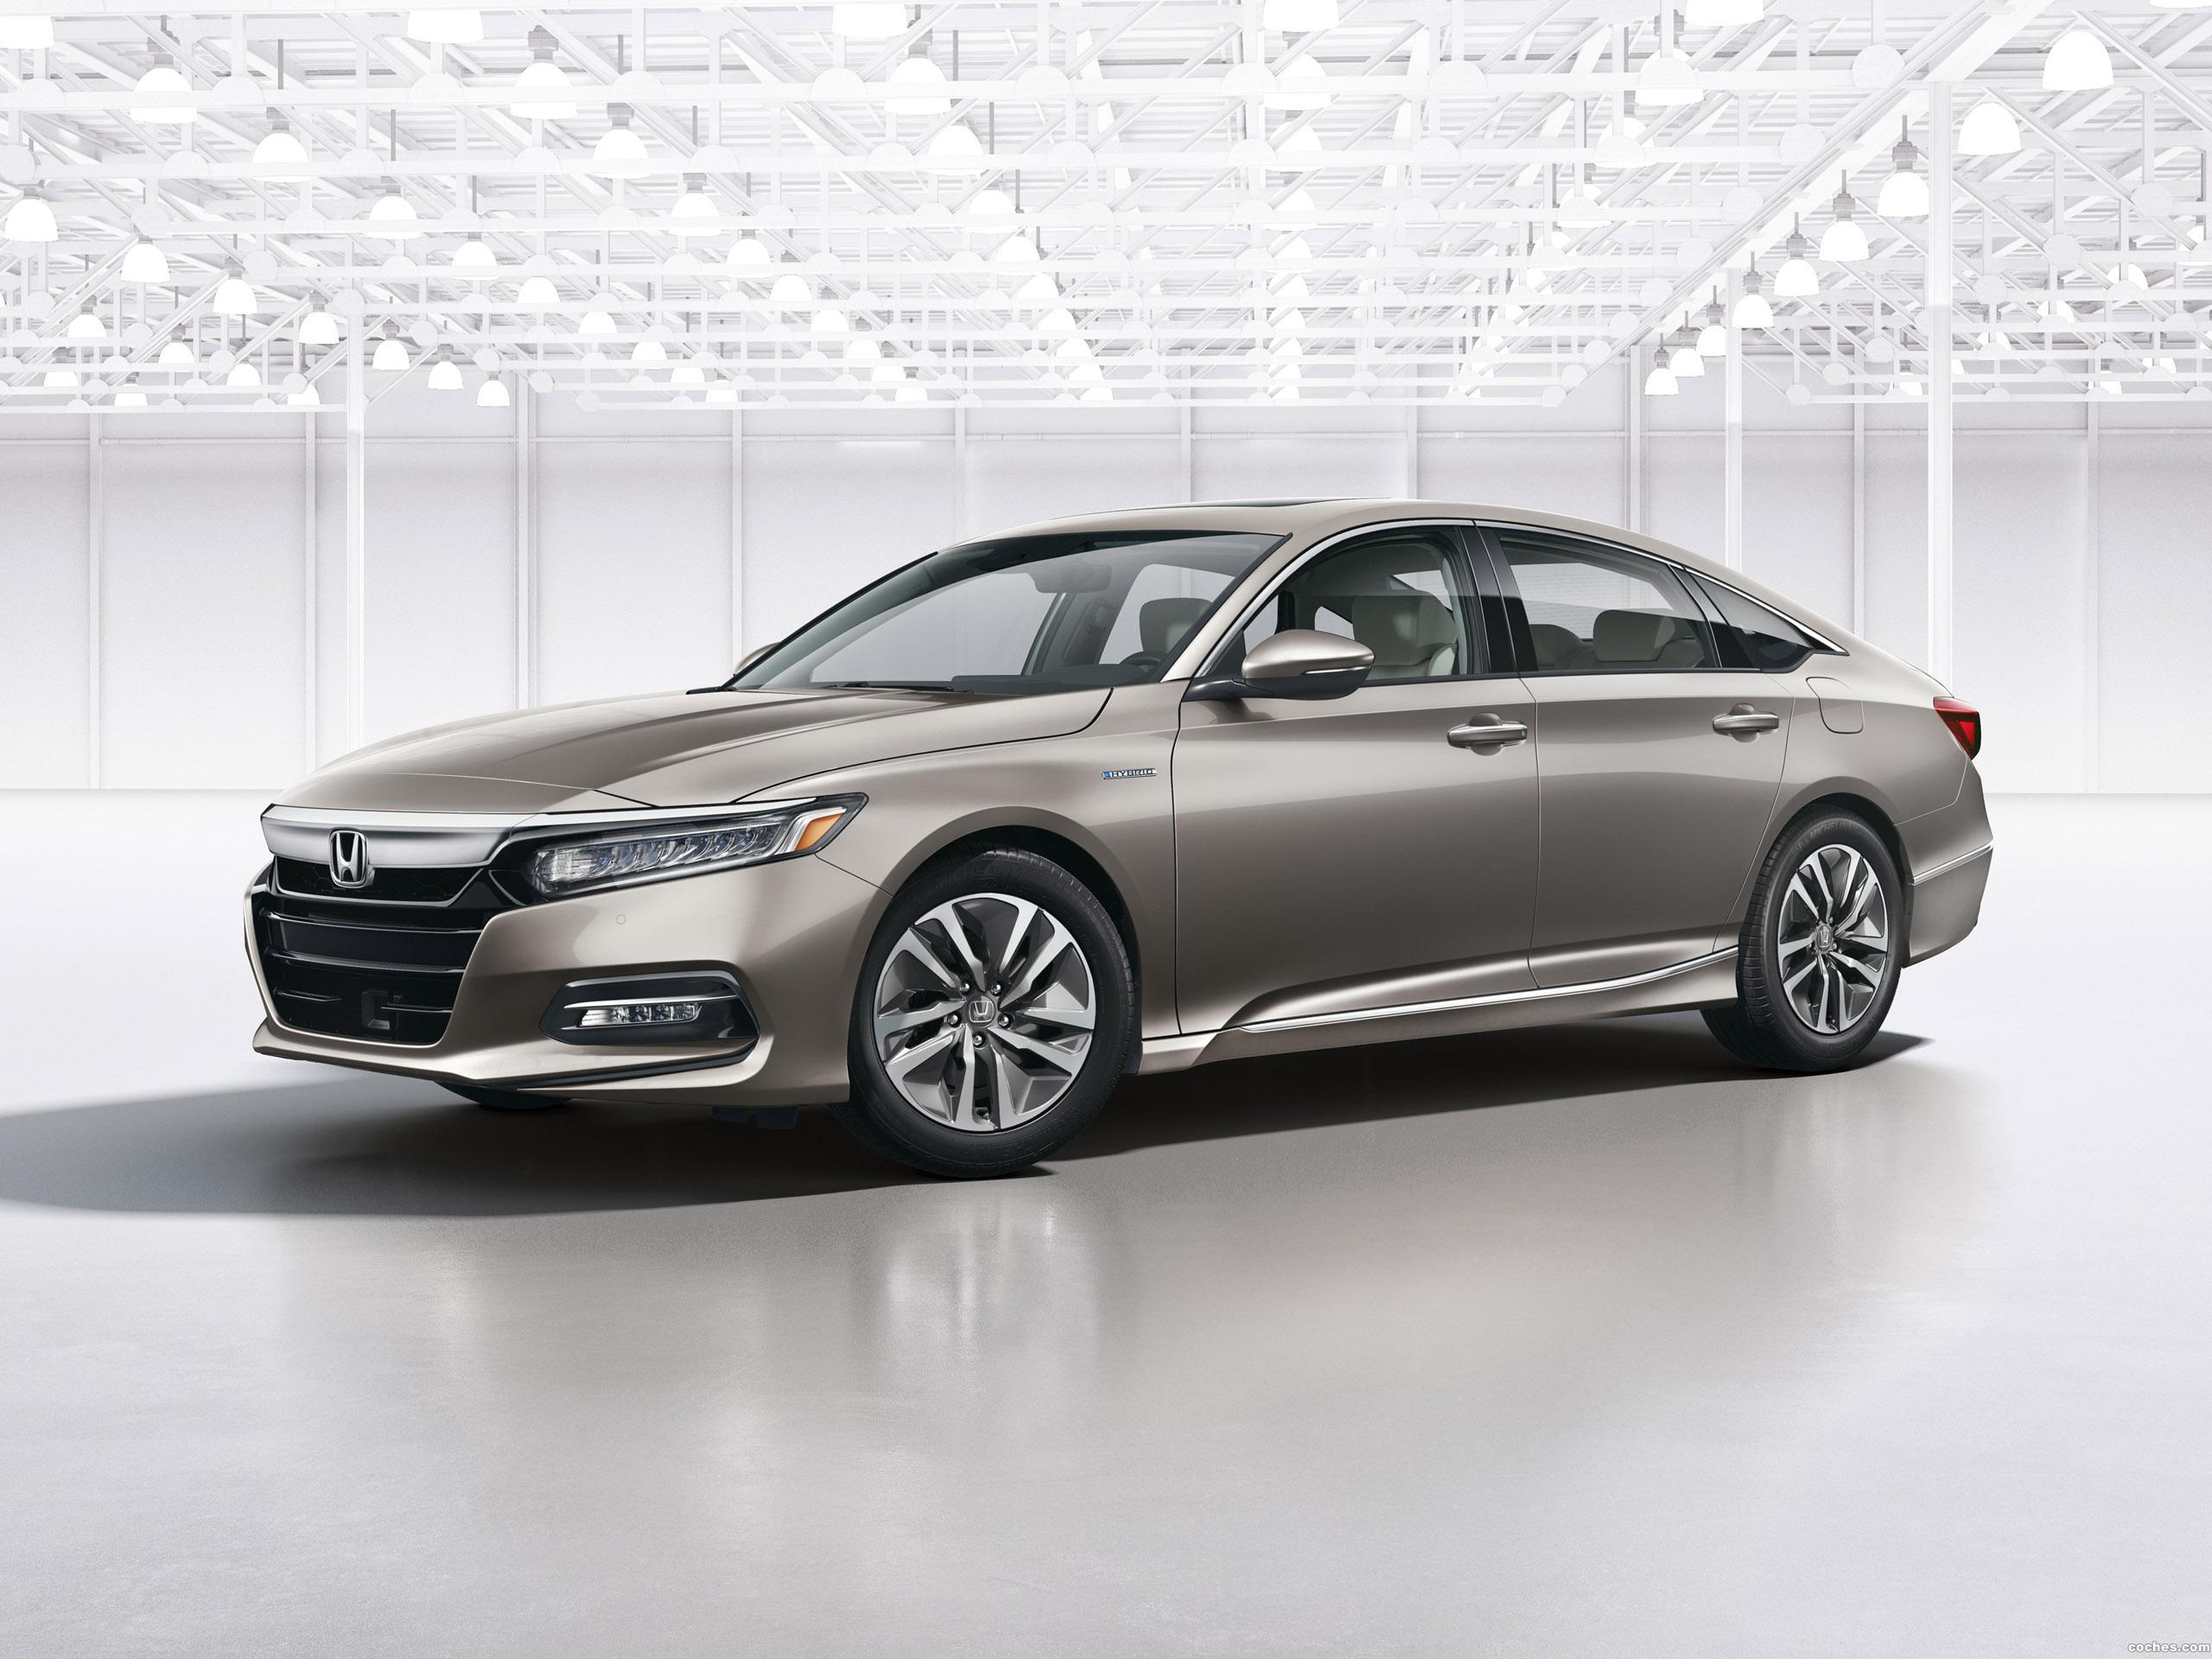 Foto 0 de Honda Accord Hybrid USA 2017